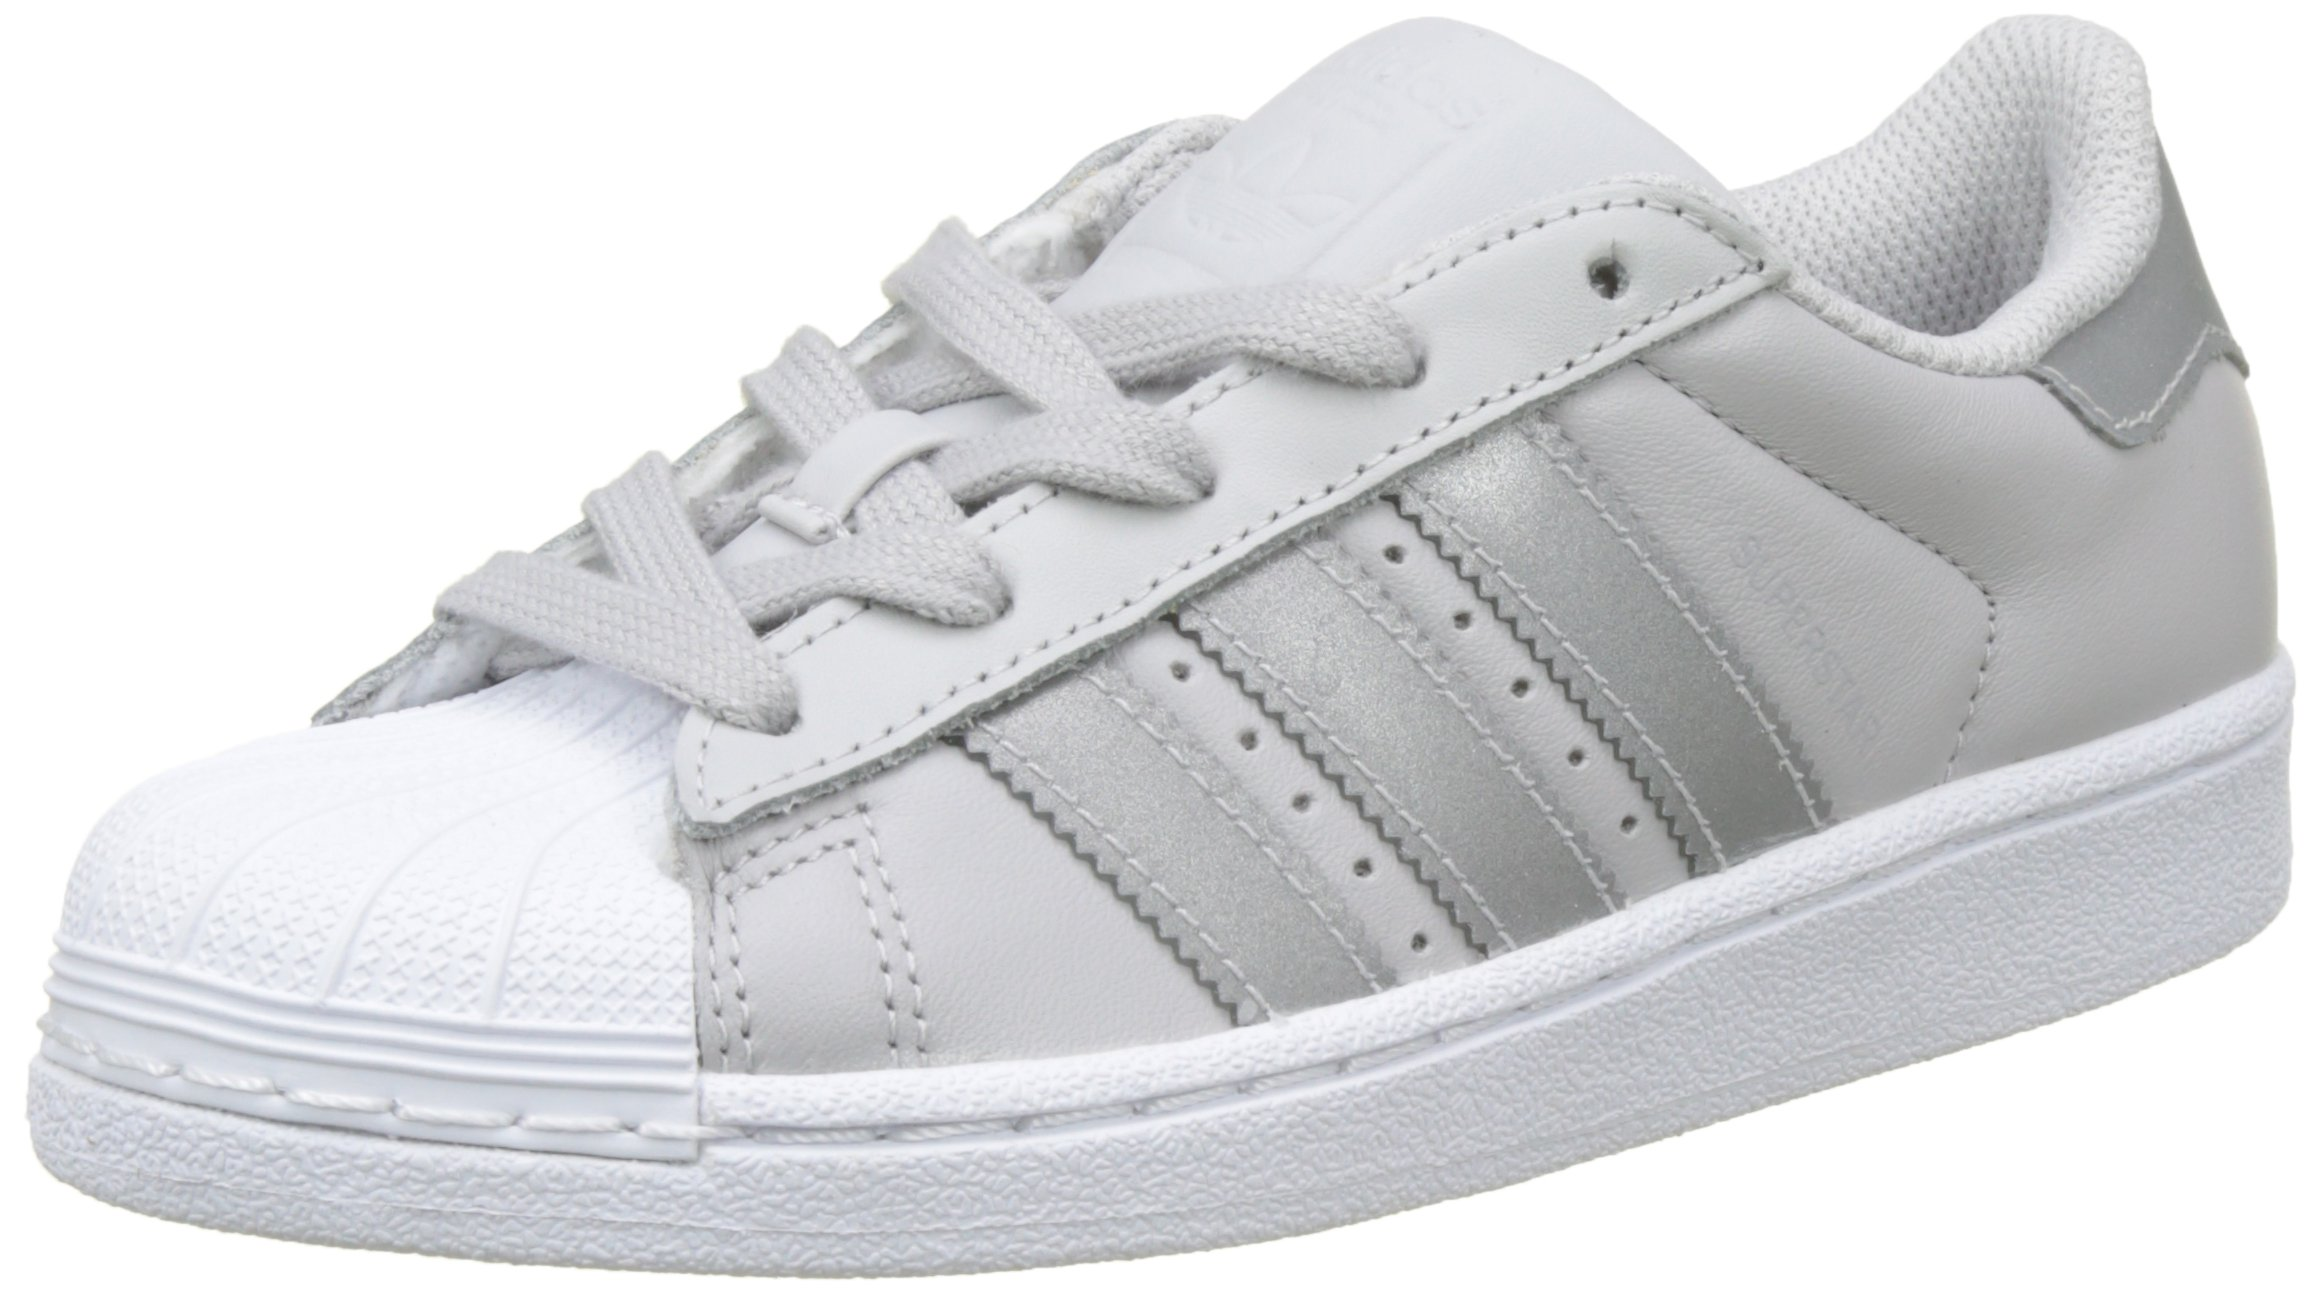 detailed look 4320a 36931 adidas Originals Superstar, Zapatillas Unisex Niños